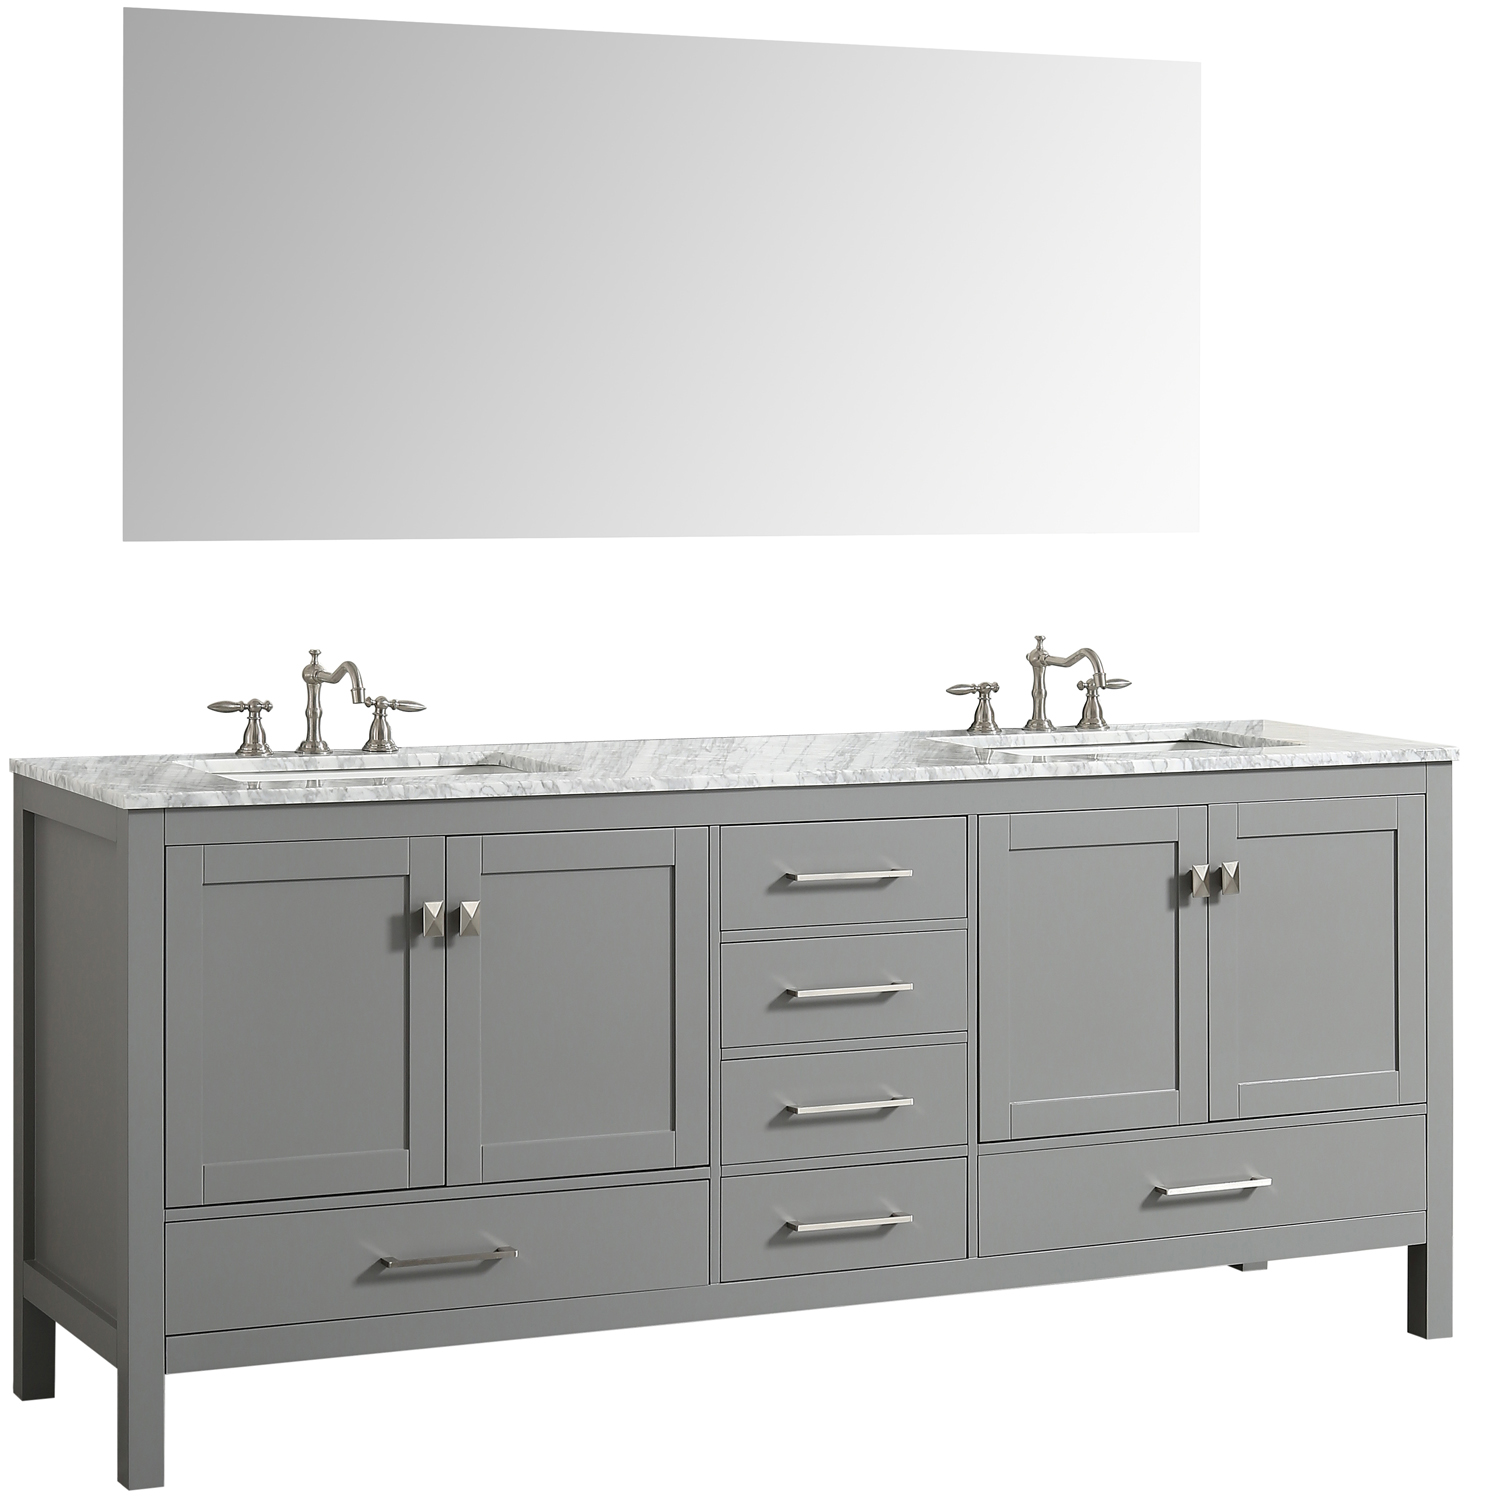 Eviva Aberdeen 84 Transitional Grey Bathroom Vanity With White Carrera Countertop